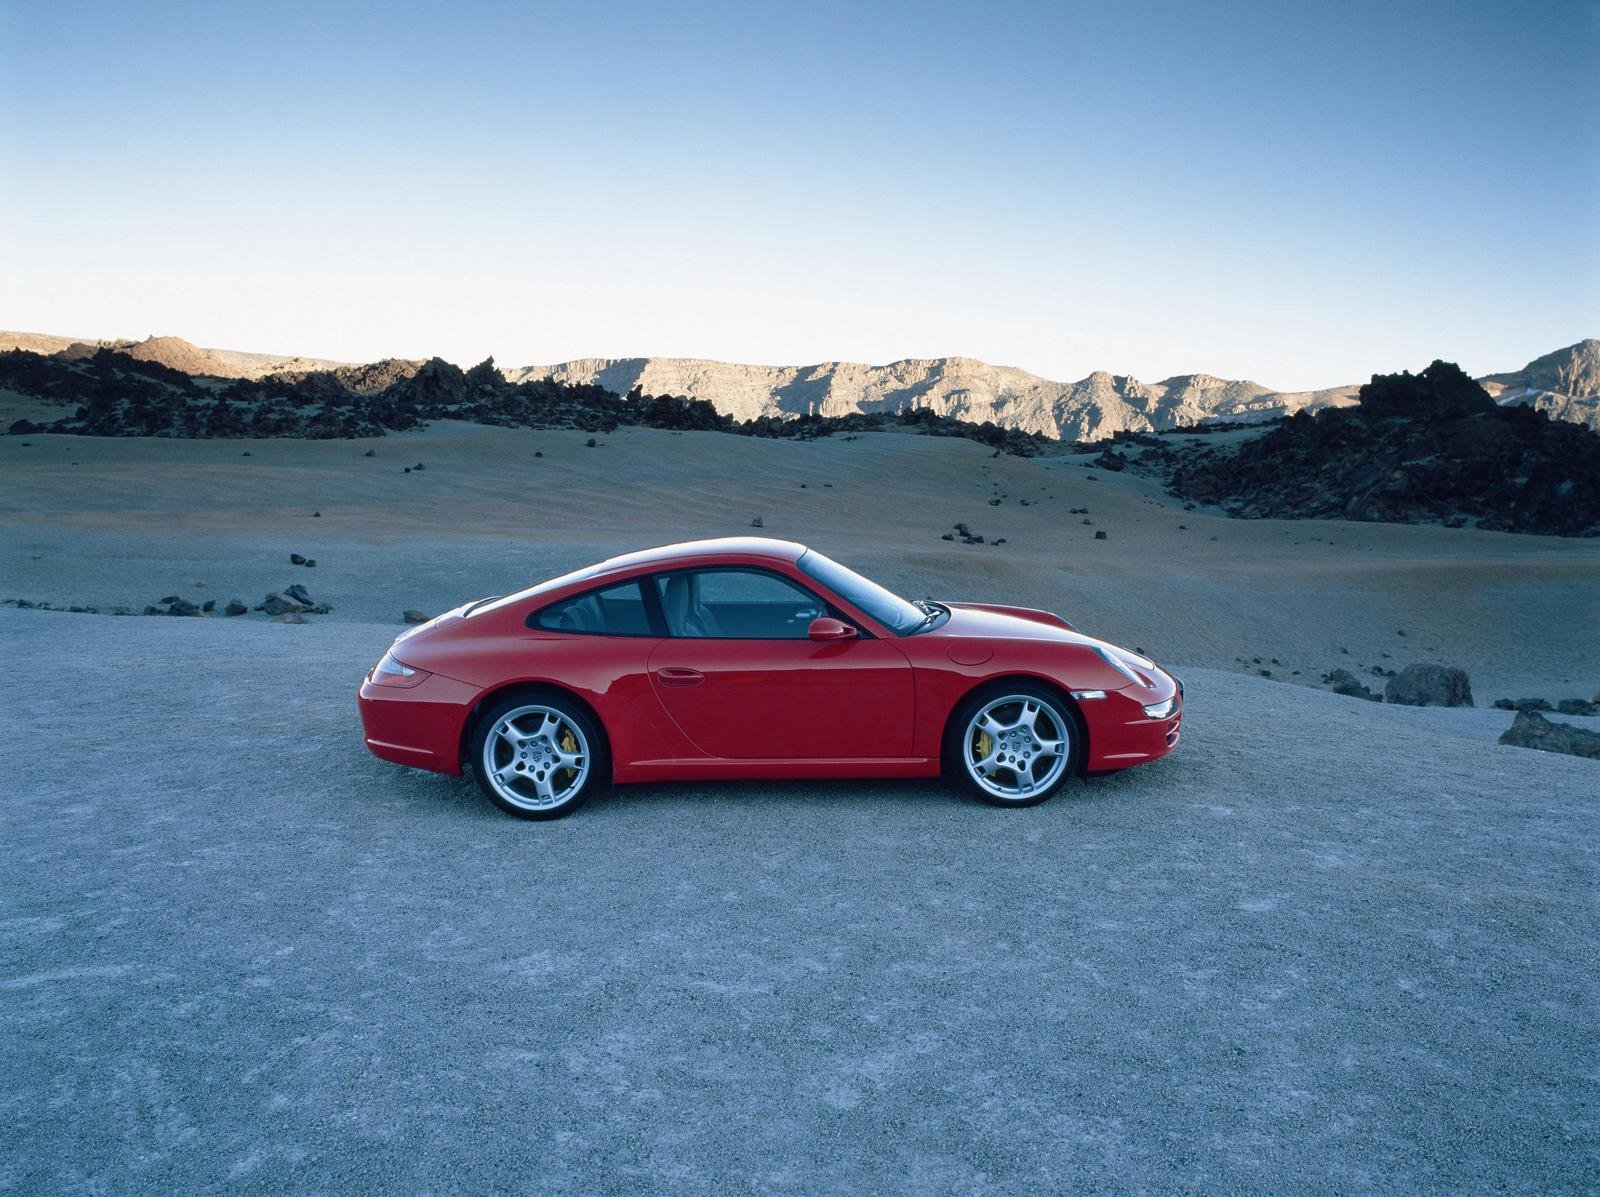 2005 porsche 911 carrera s 997 picture 41774 car. Black Bedroom Furniture Sets. Home Design Ideas